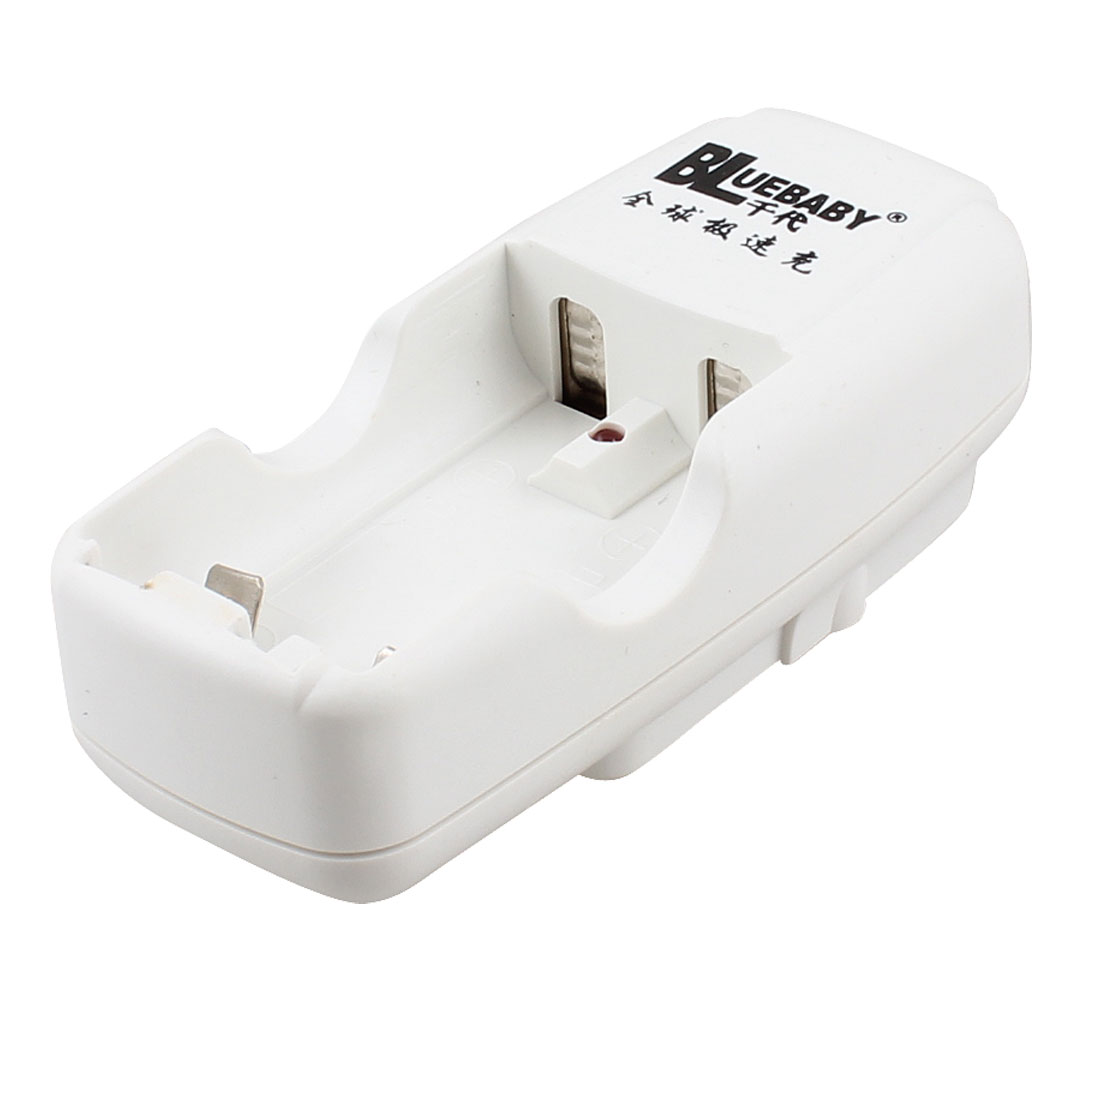 AC 100-230V US 2 Pin Plug Rechargeable Charger for AA AAA Ni-Mh Ni-Cd Batteries